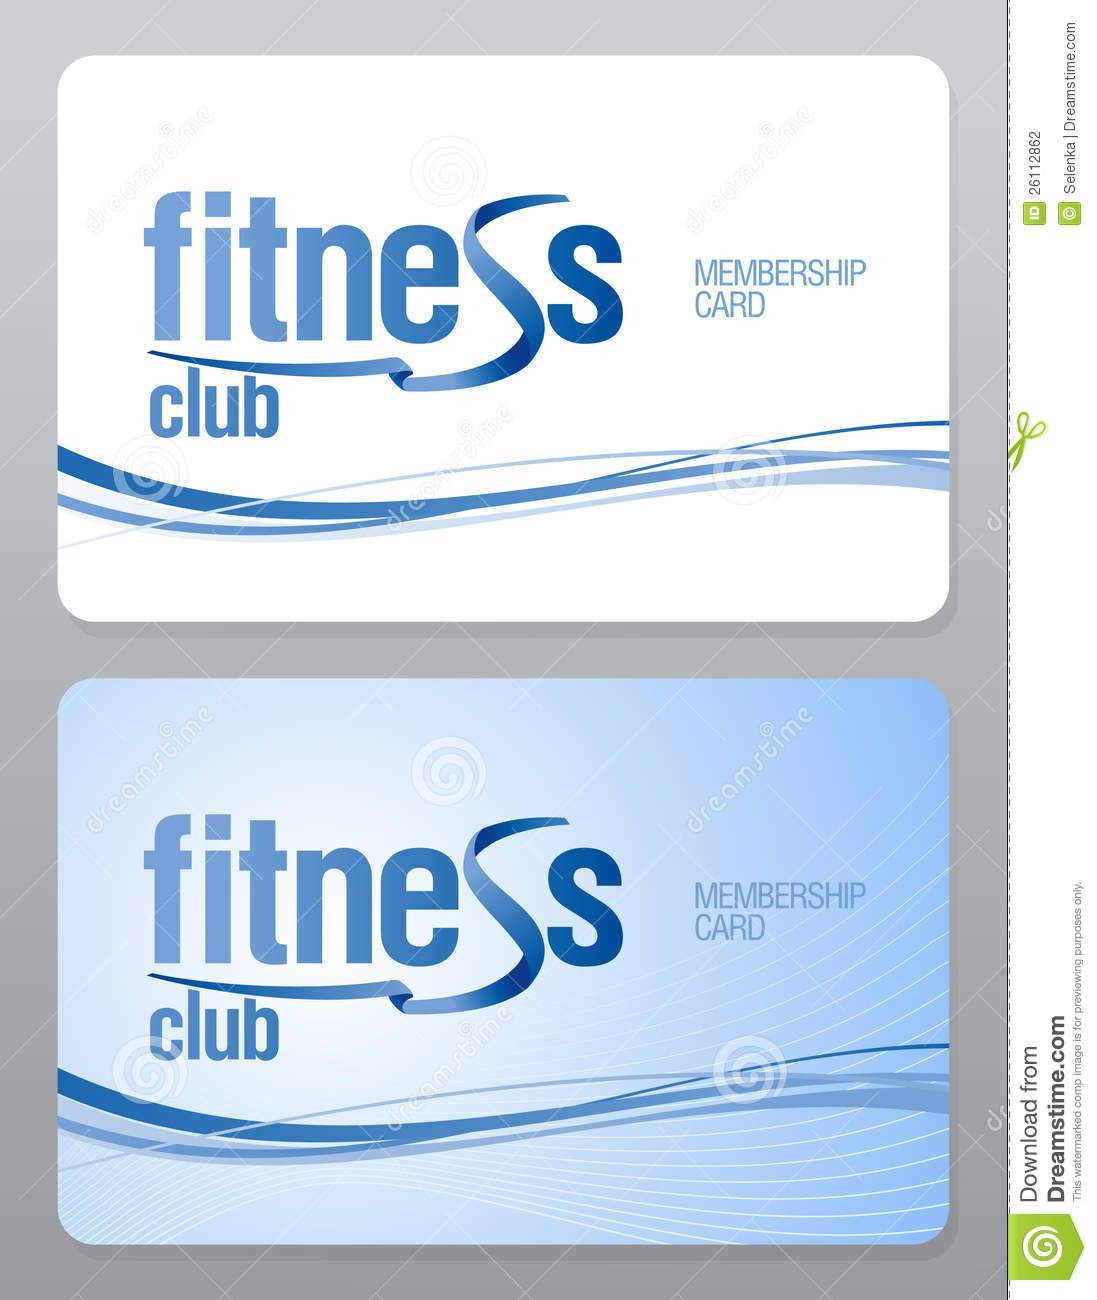 The Interesting Fitness Club Membership Card Stock Vector Illustration Of With Gym Membership Gym Membership Card Membership Card Examples Of Business Cards